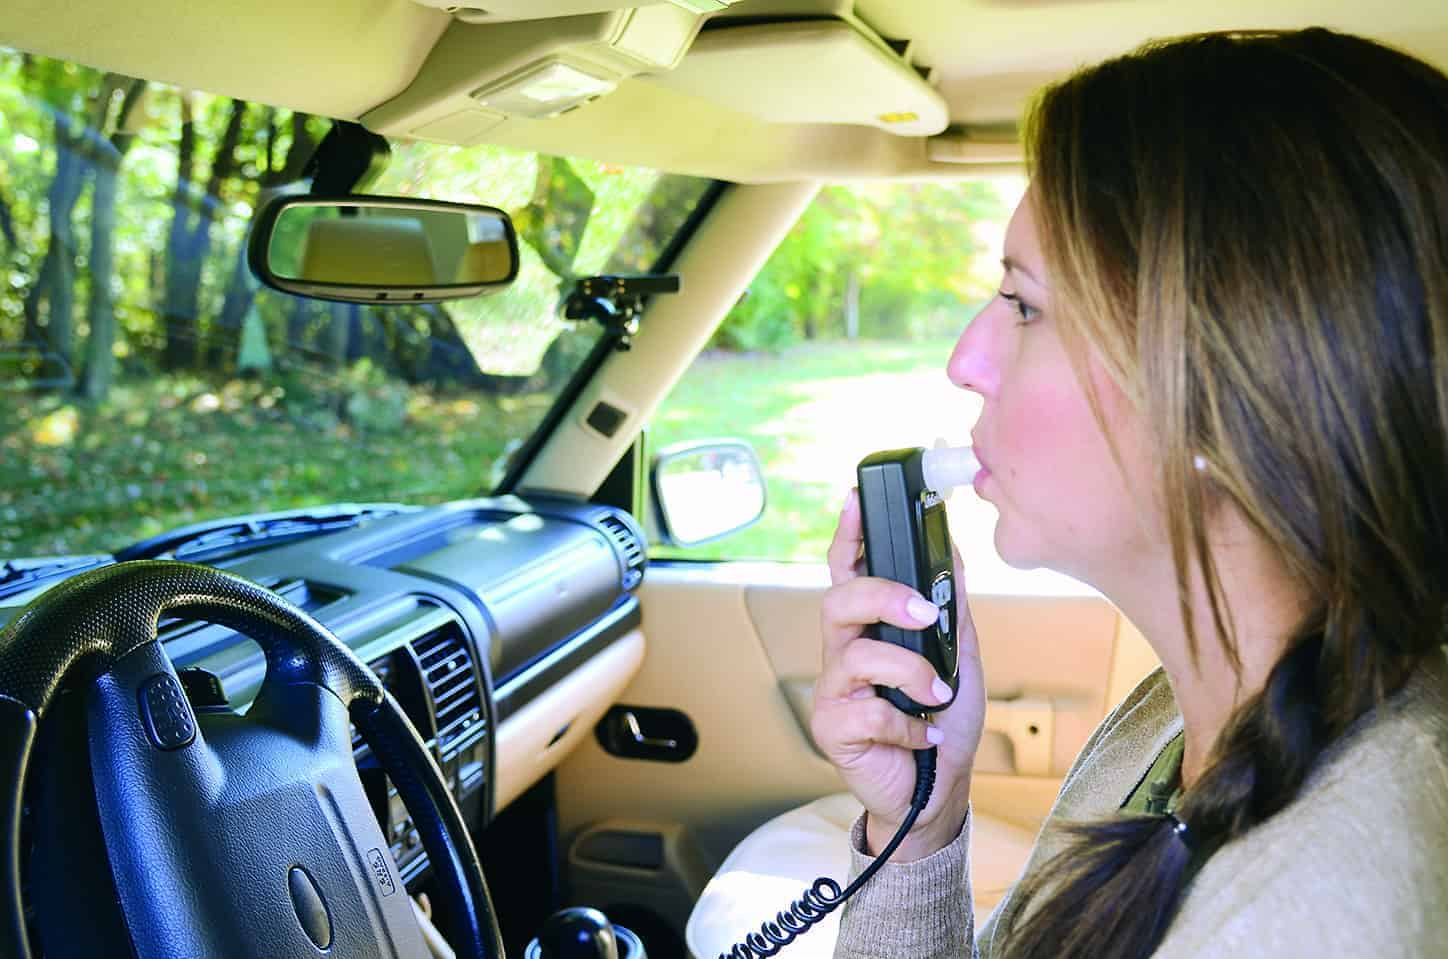 lifesafer-ignition-interlock-in-use